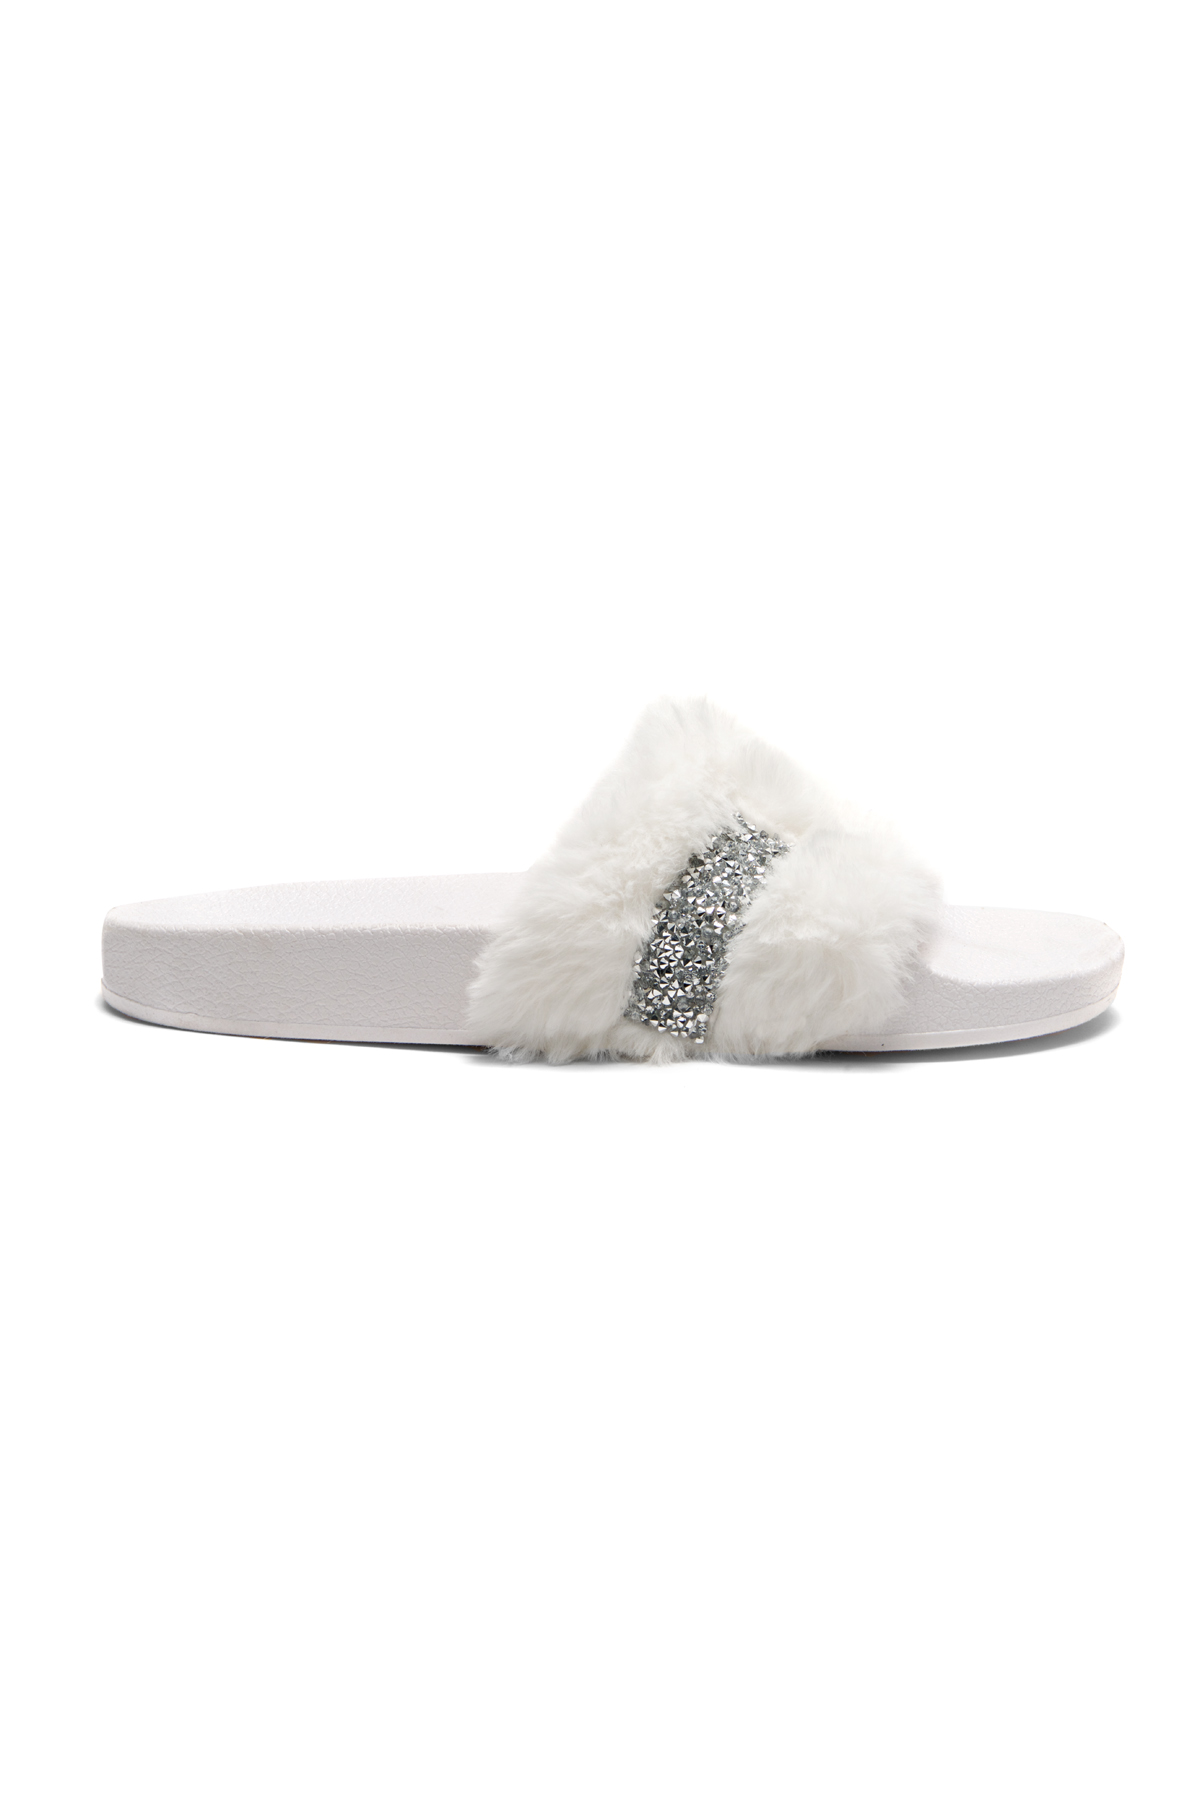 38c7991ab HerStyle SL-16110101 Faux Fur Slide Sandal with Rhinestone Accent (White)